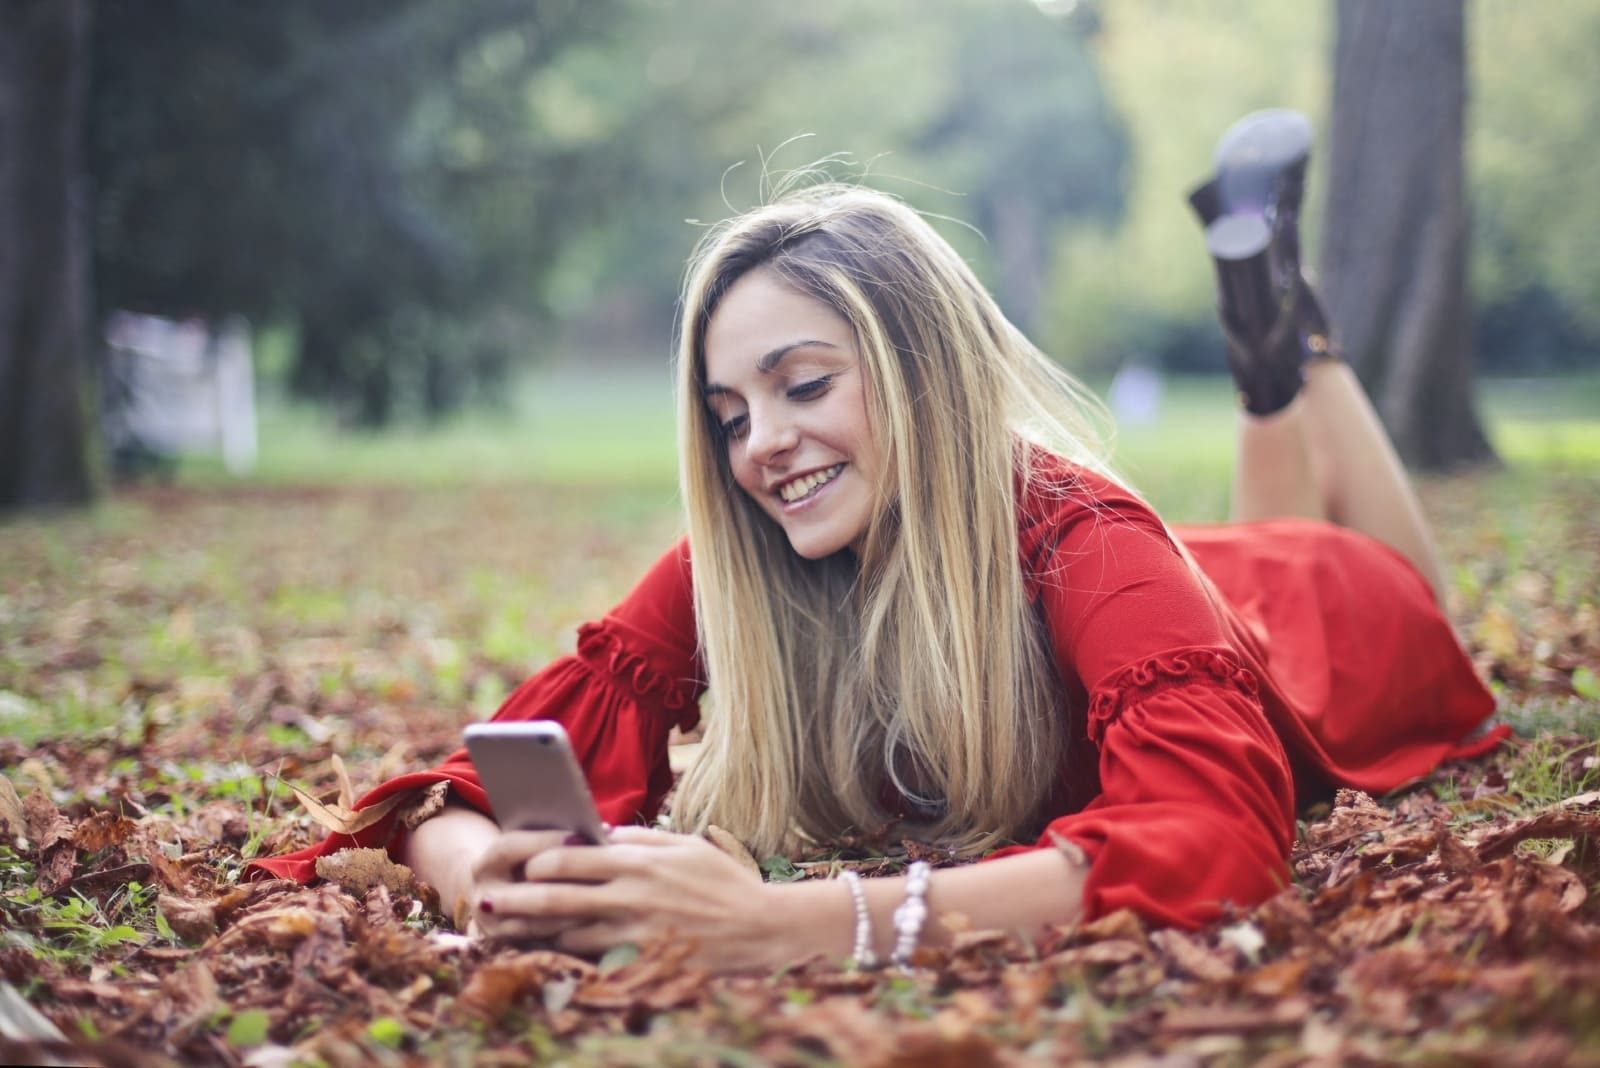 blonde woman using smartphone while laying on leaves